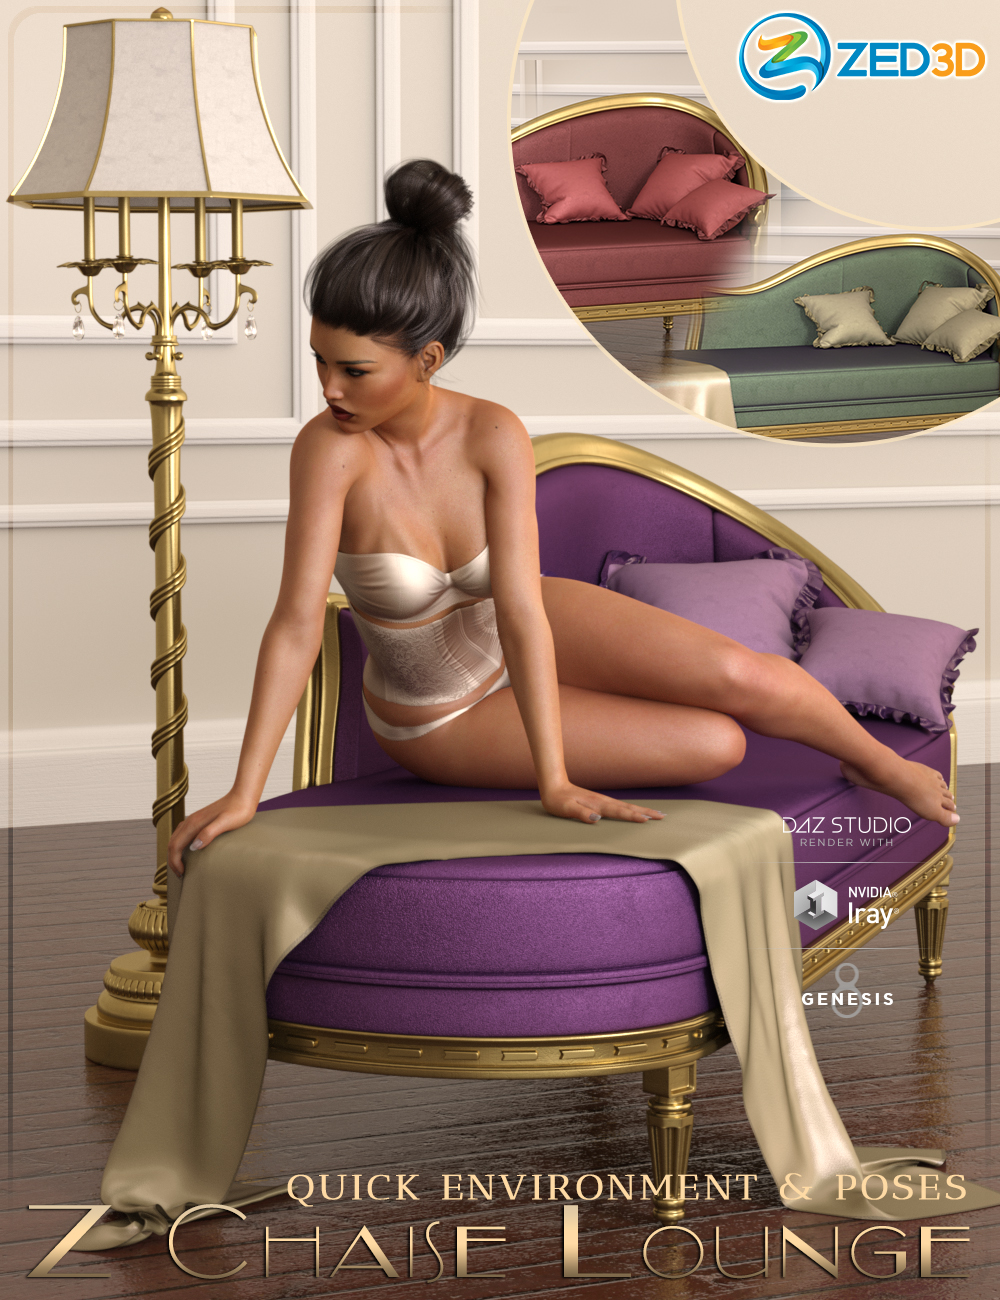 Z Chaise Lounge Quick Environment and Poses by: Zeddicuss, 3D Models by Daz 3D